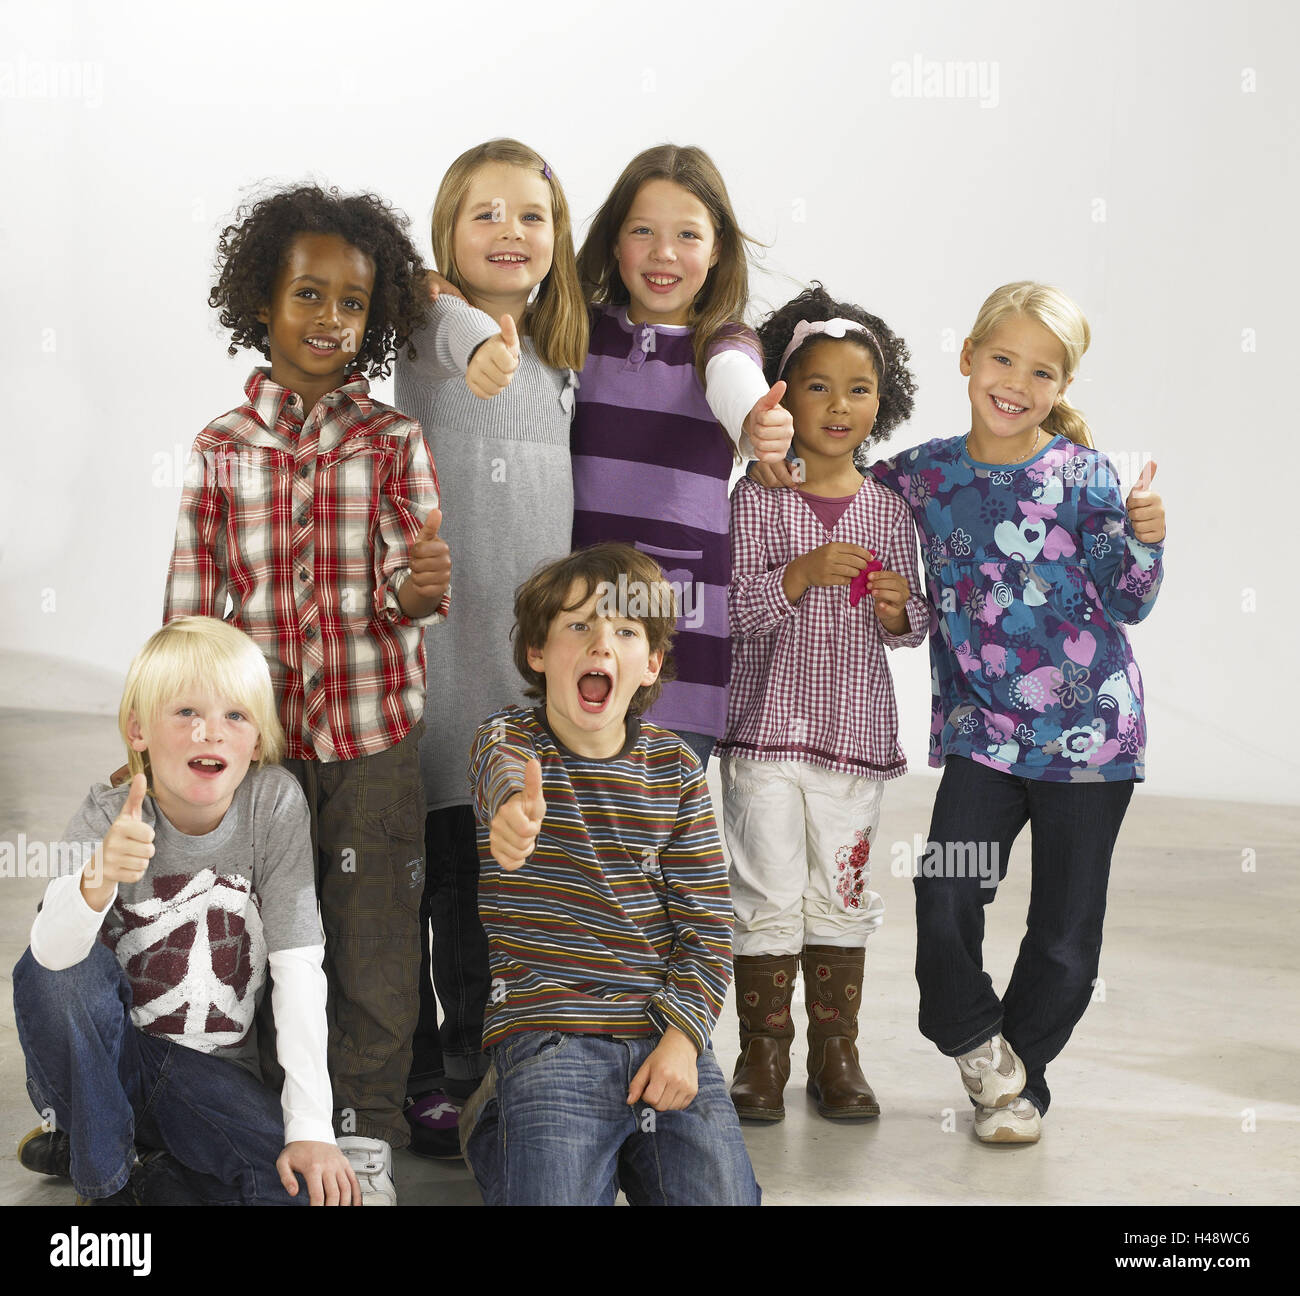 Children, nationality, passed away, laugh, happy, group picture, model released, people, girls, boys, joy, gesture, - Stock Image